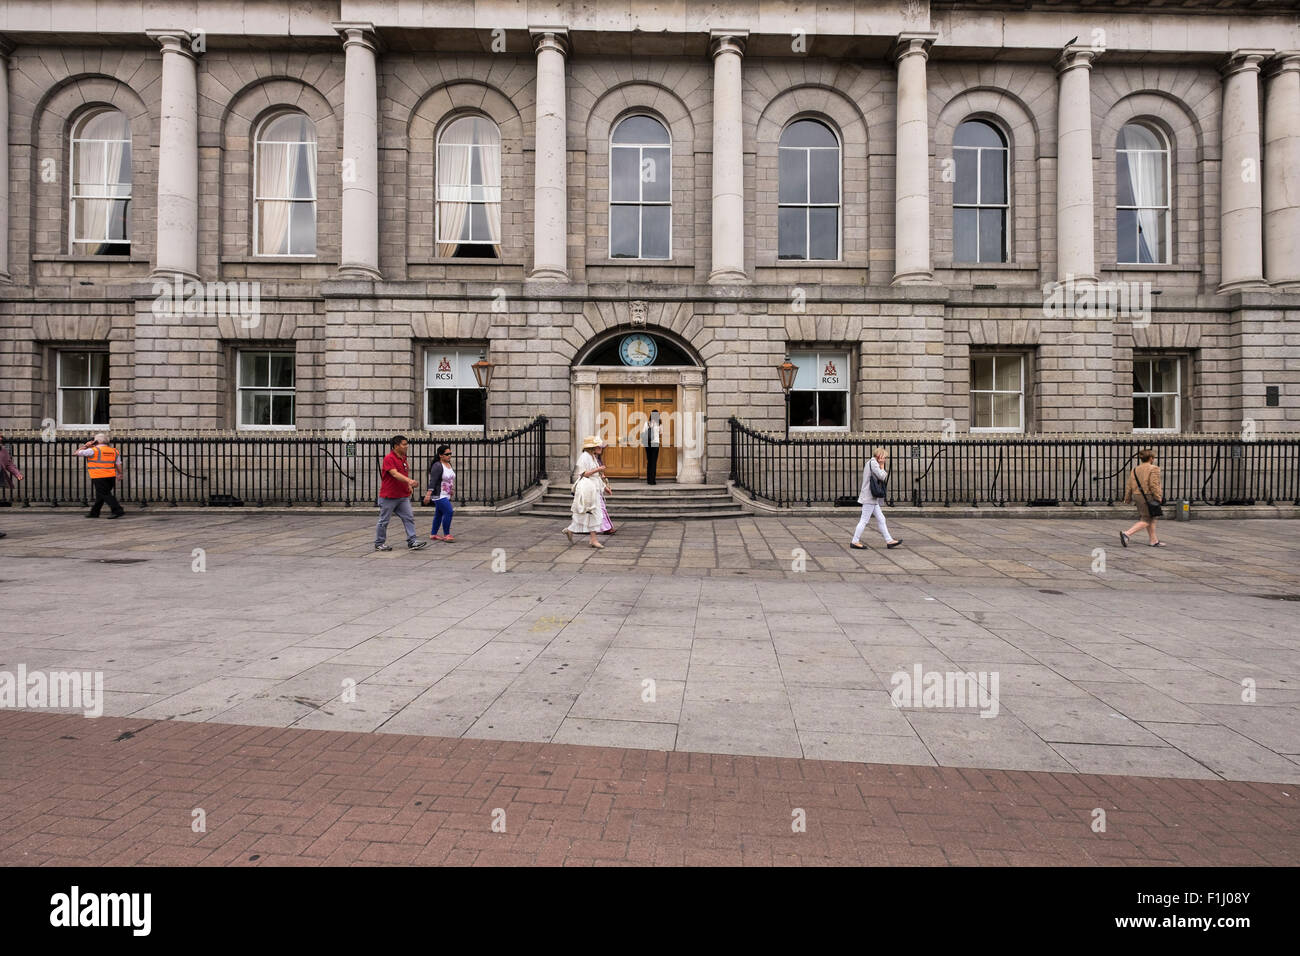 The College of Surgeons building on St Stephens Green, Dublin. Headquarters of the Irish Citizen Army during the - Stock Image